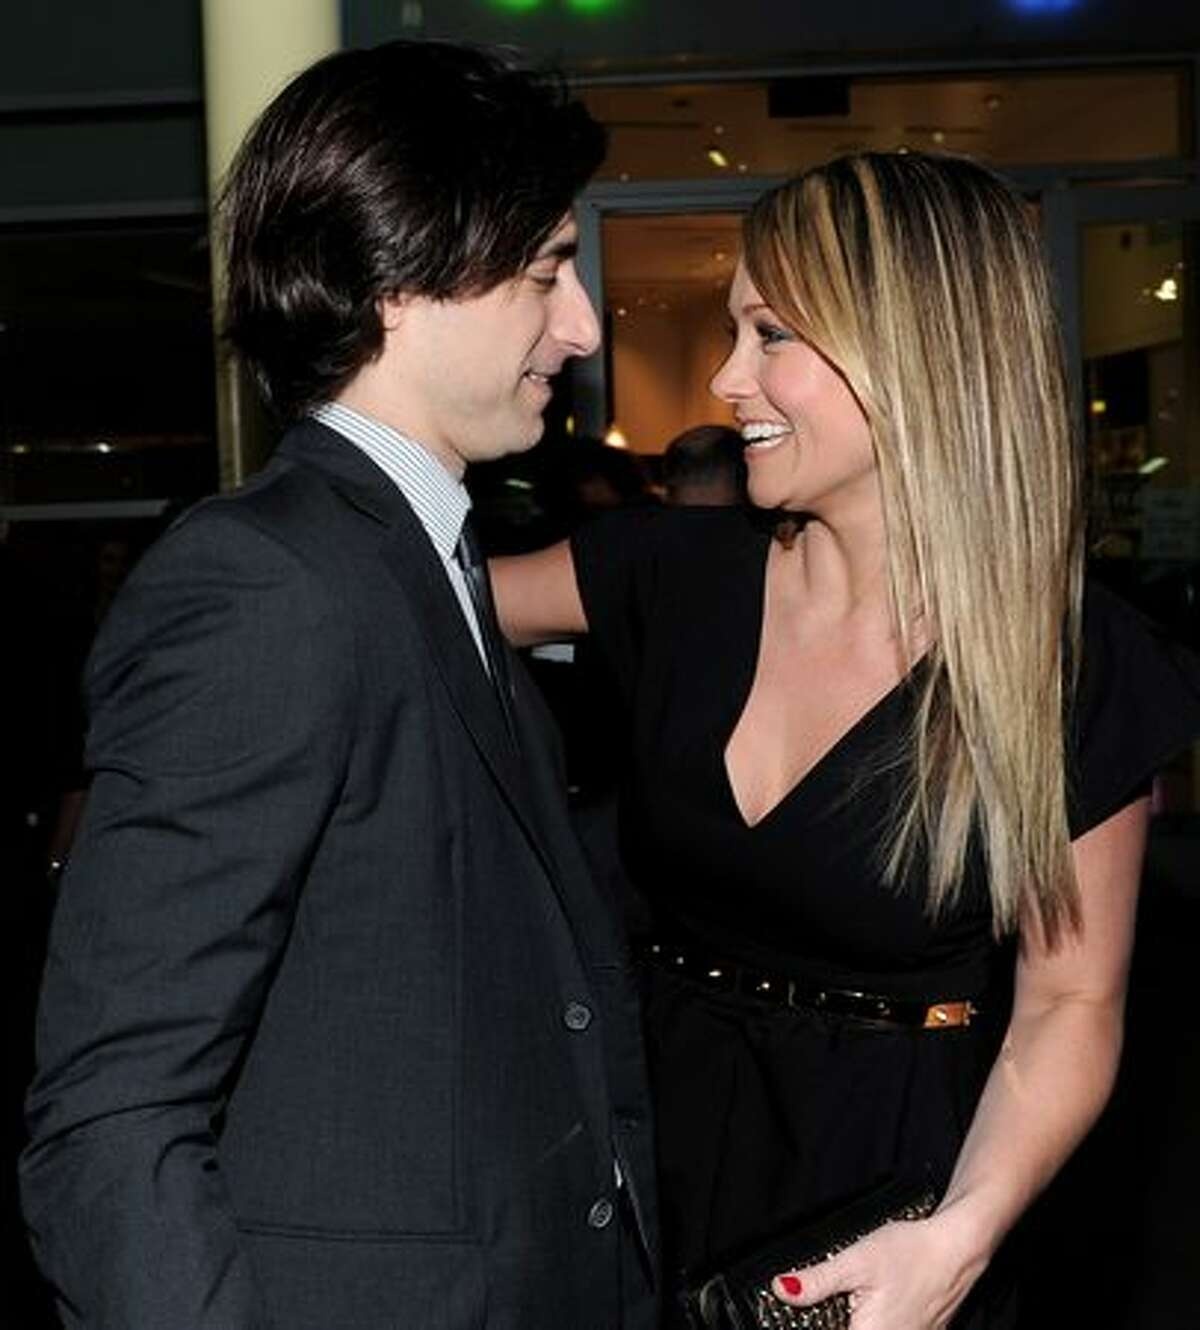 Director Noah Baumbach and actress Christine Taylor arrive on the red carpet at the